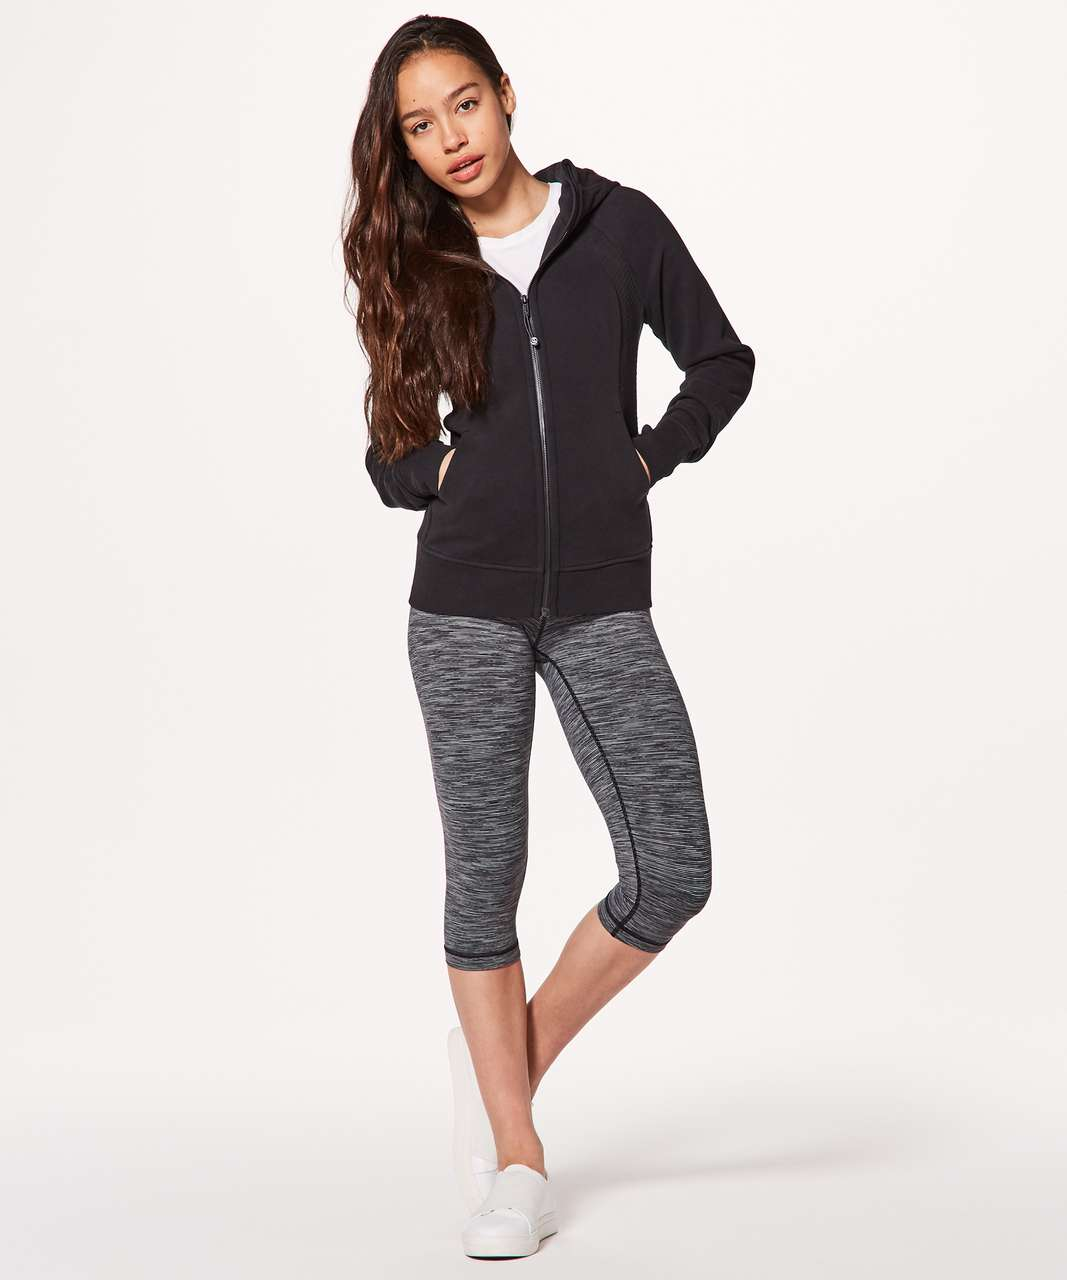 Lululemon Scuba Hoodie *Light Cotton Fleece Sashiko - Black / Black